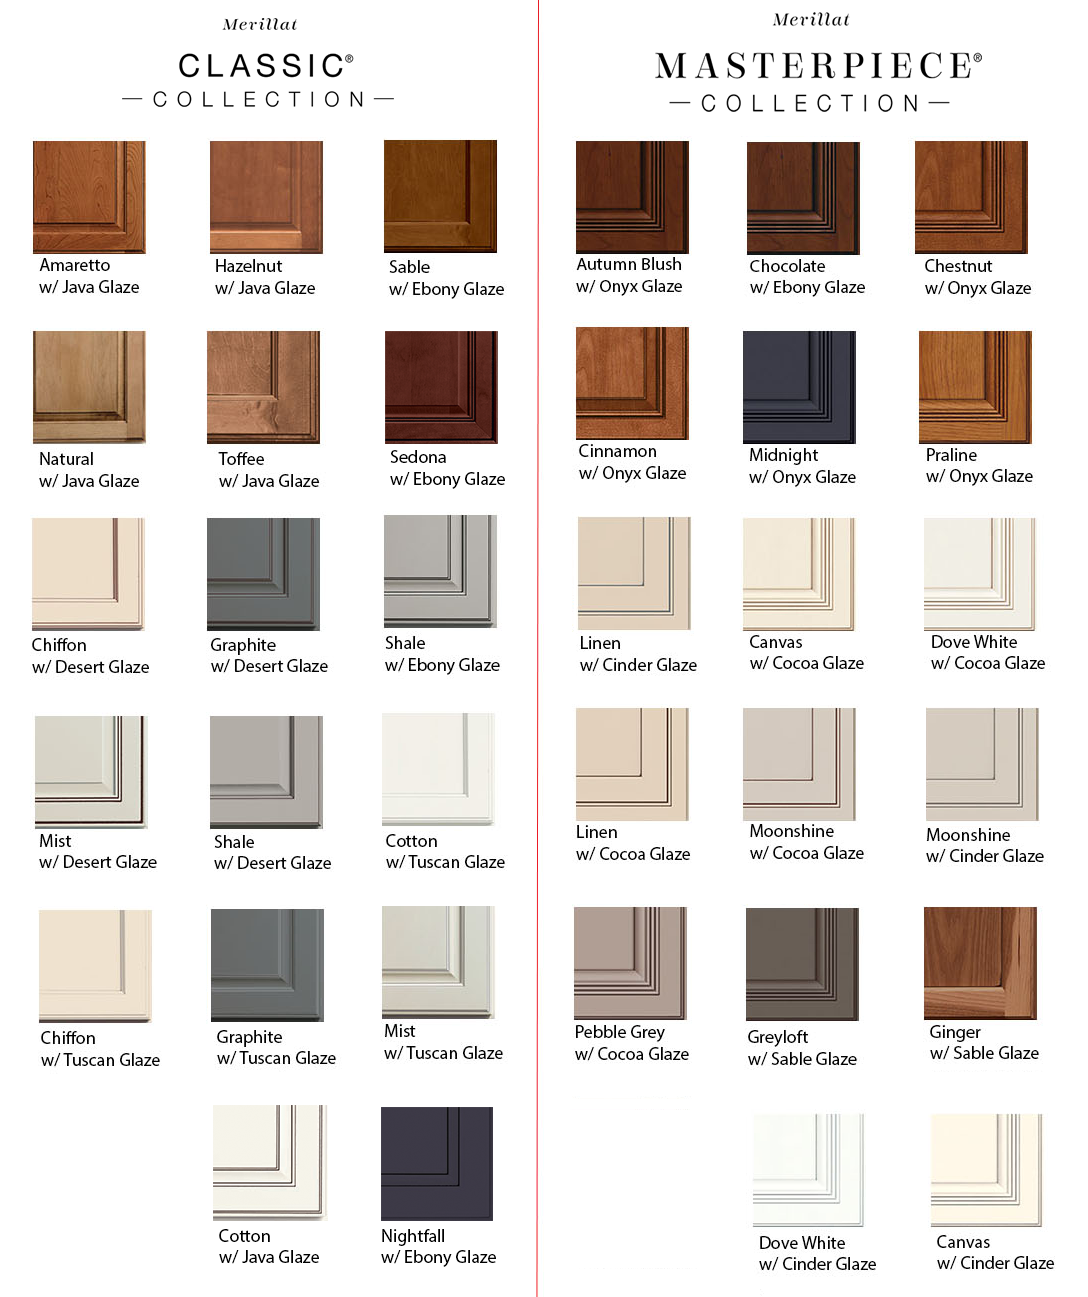 merillat-glazed-finish-options.png